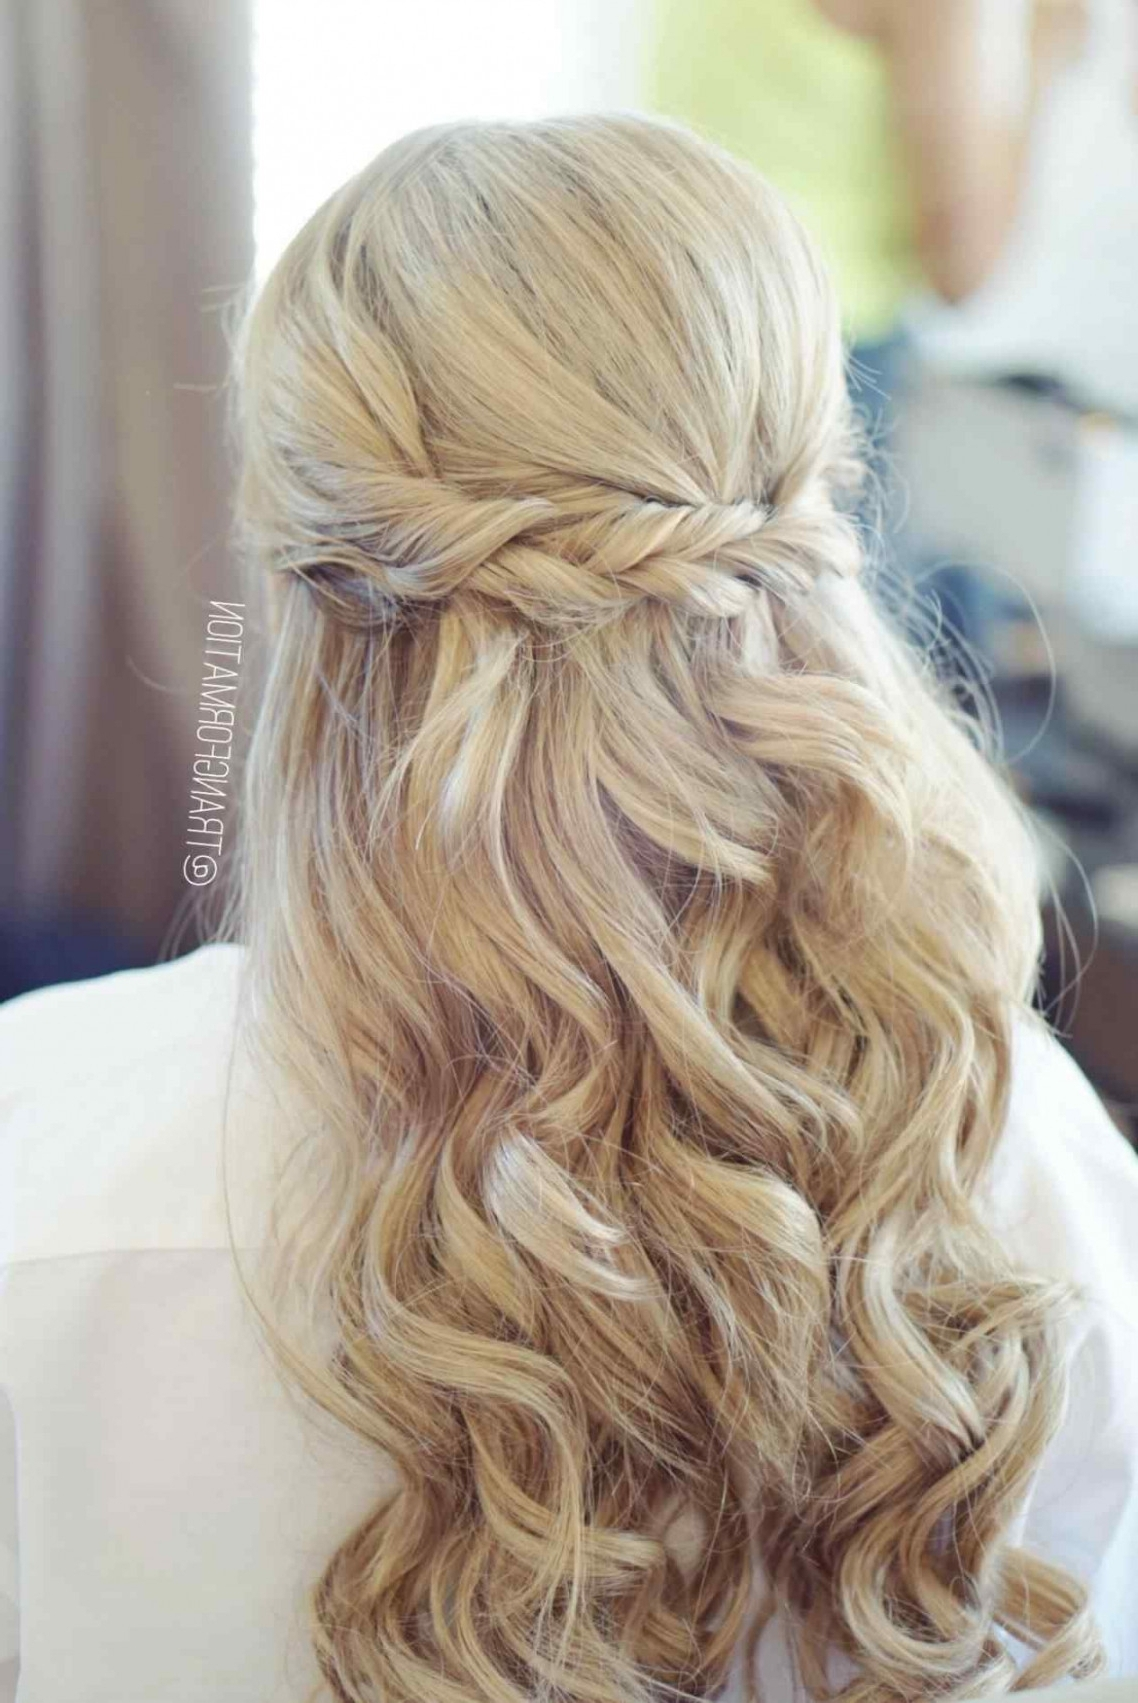 Princessy Half Updo Youtube Up Curly For Formal Long Hair With Inside Half Updo Hairstyles (View 11 of 15)